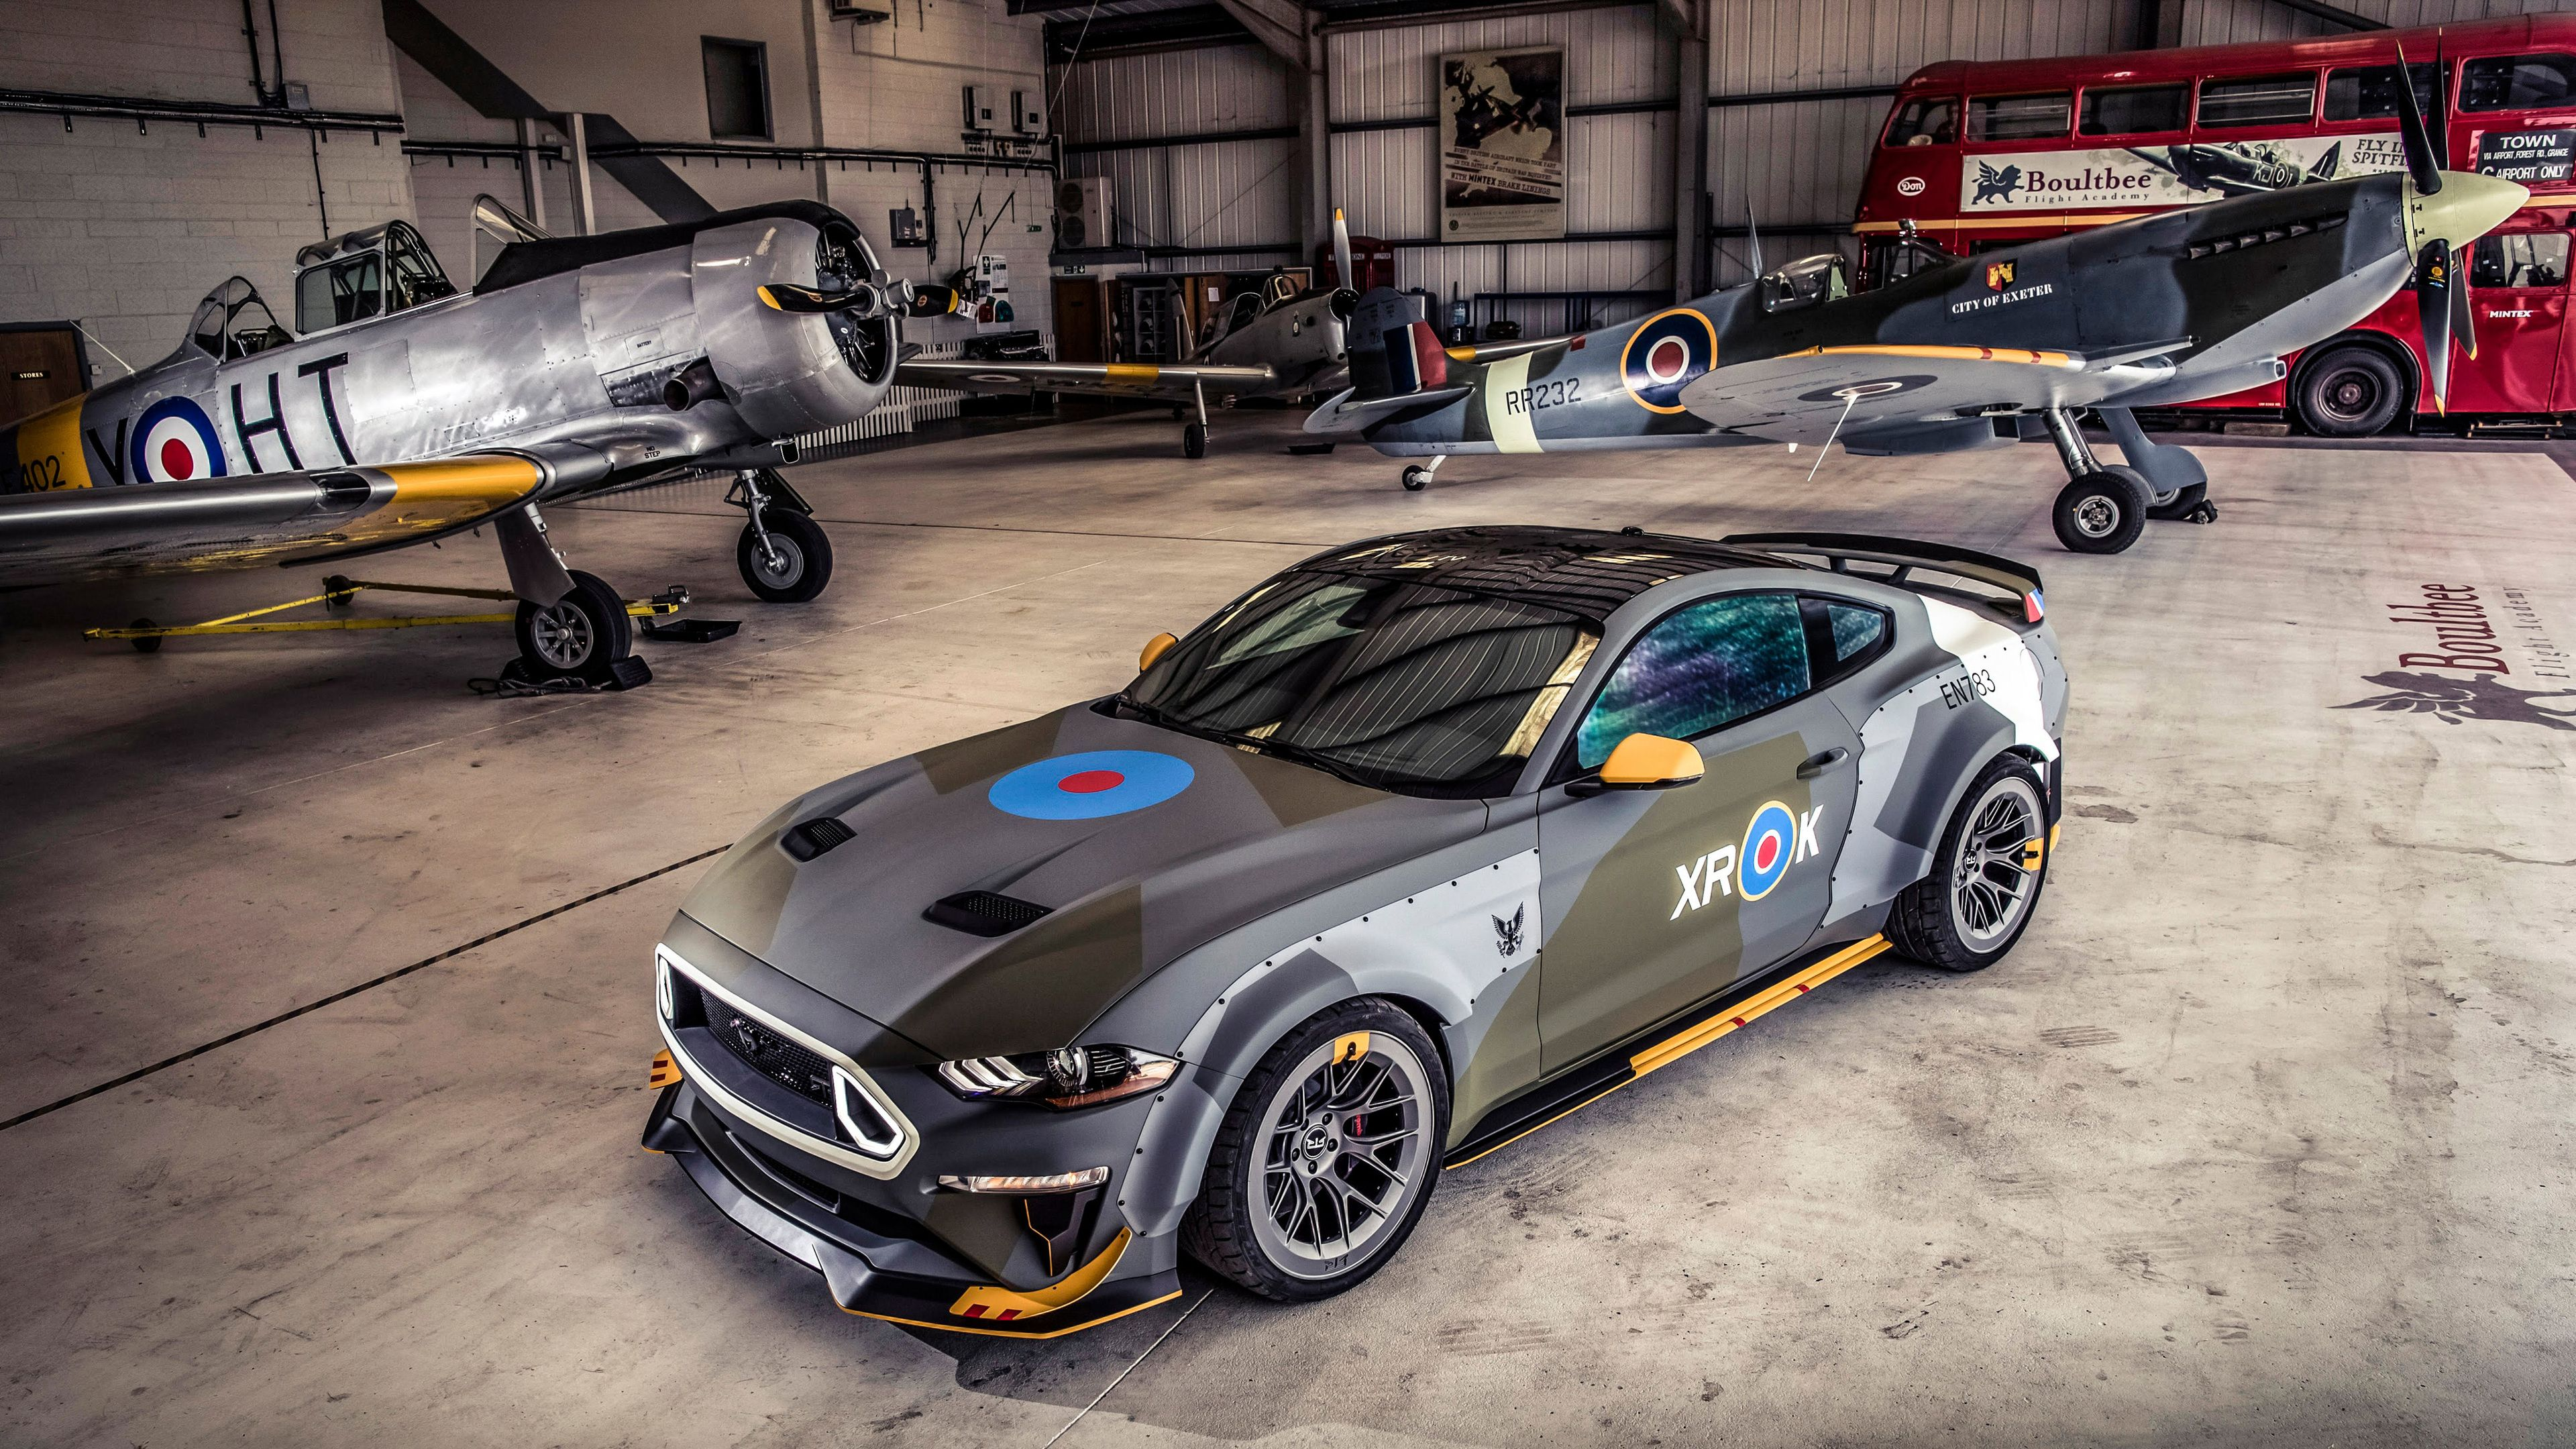 Ford Eagle Squadron Mustang Gt 2018 4k Mustang Wallpapers Hd